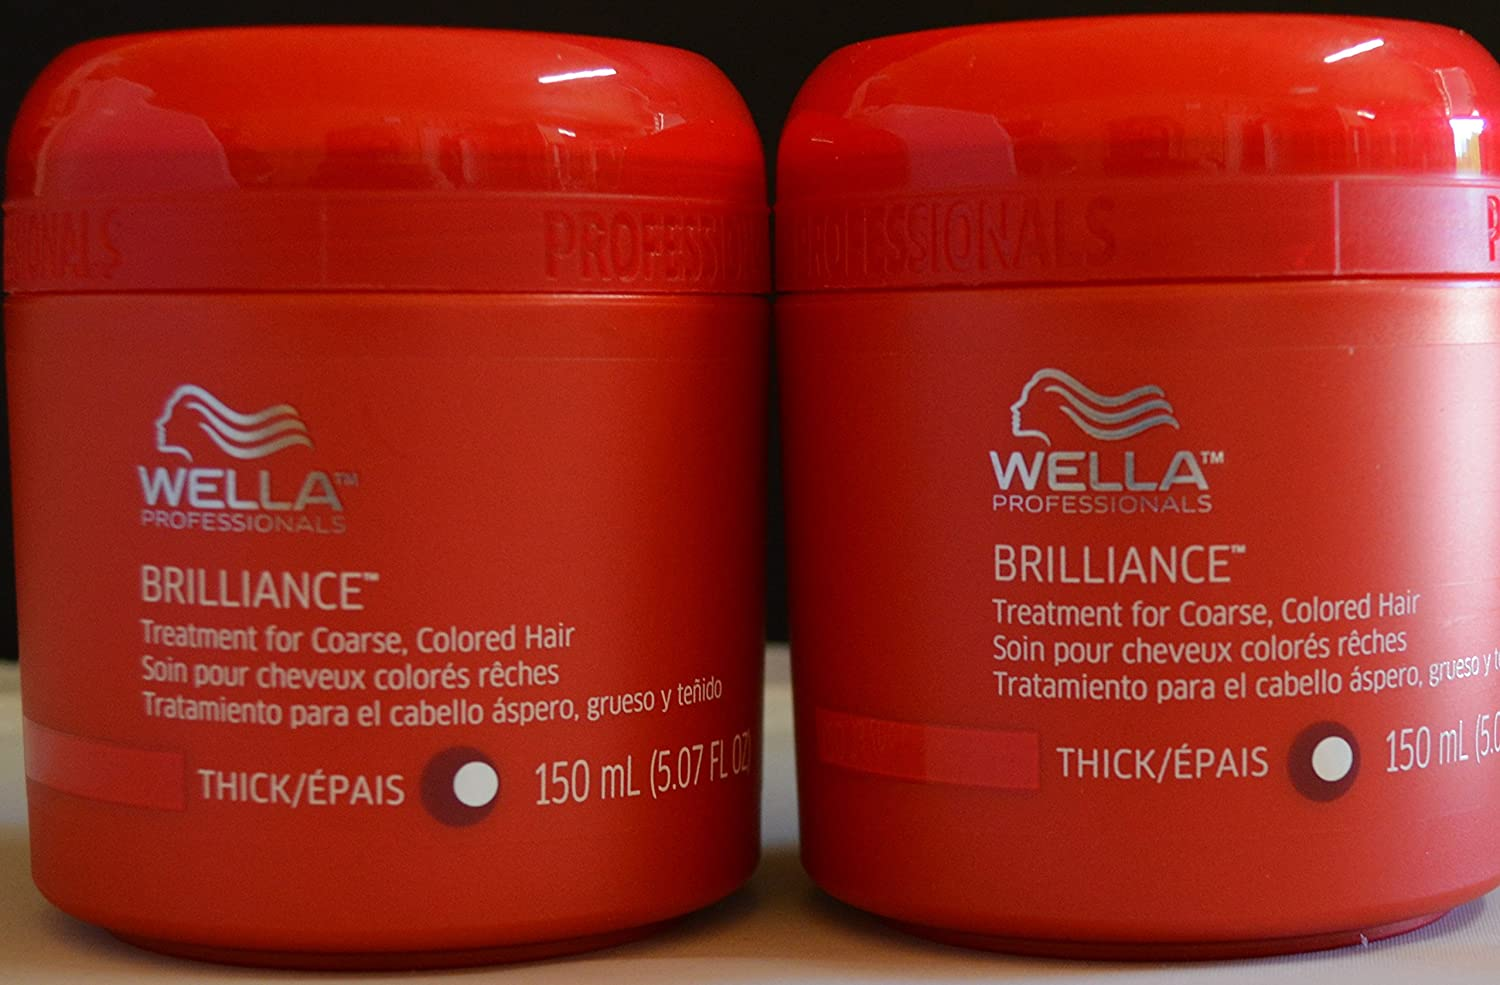 Wella Brilliance Treatment for Coarse Colored Hair 5.07oz (2 pack)